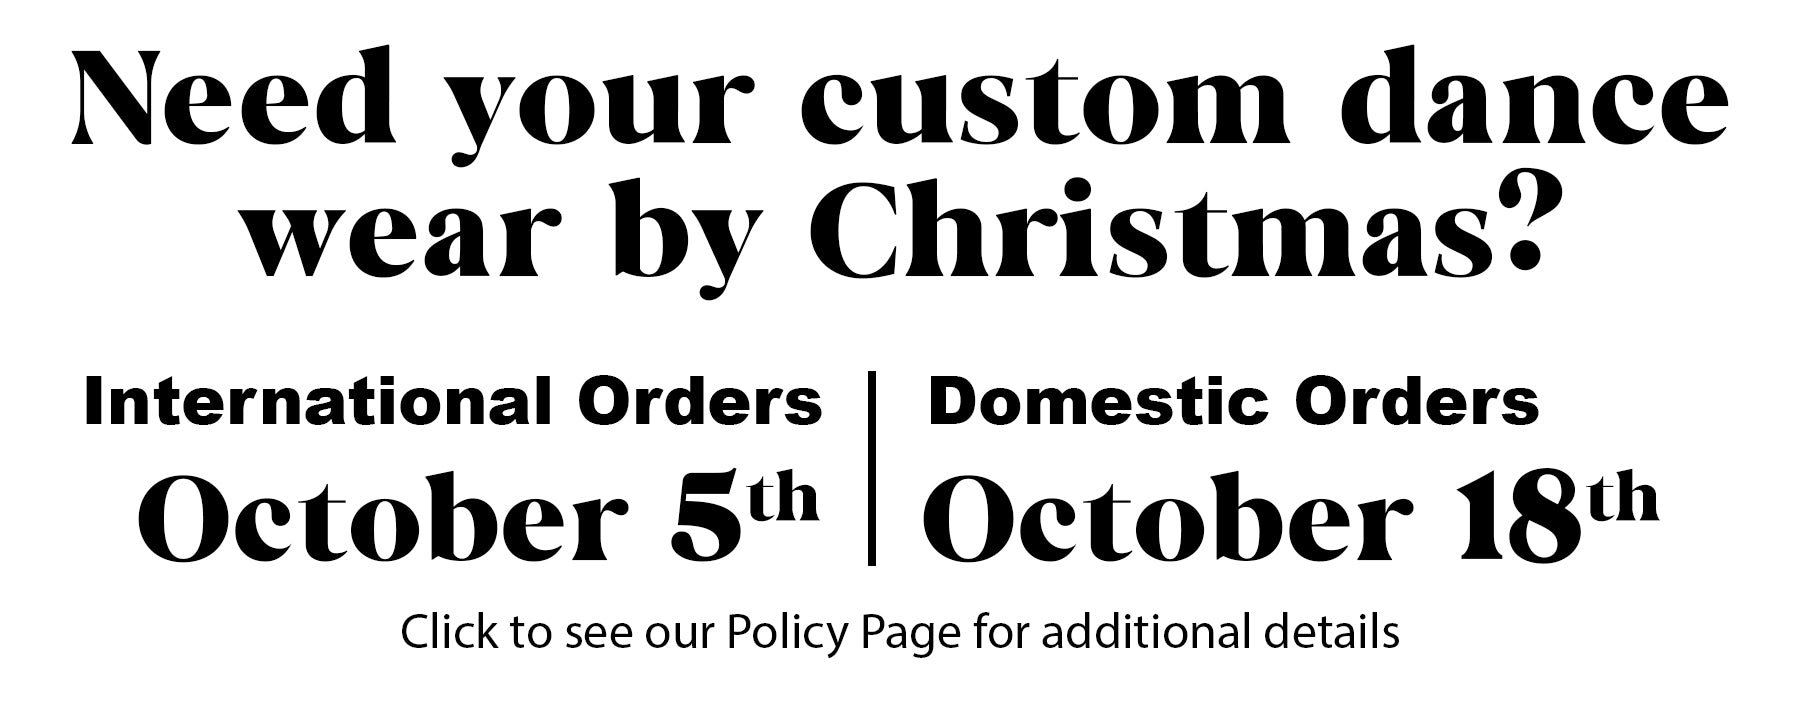 See our policies page for details